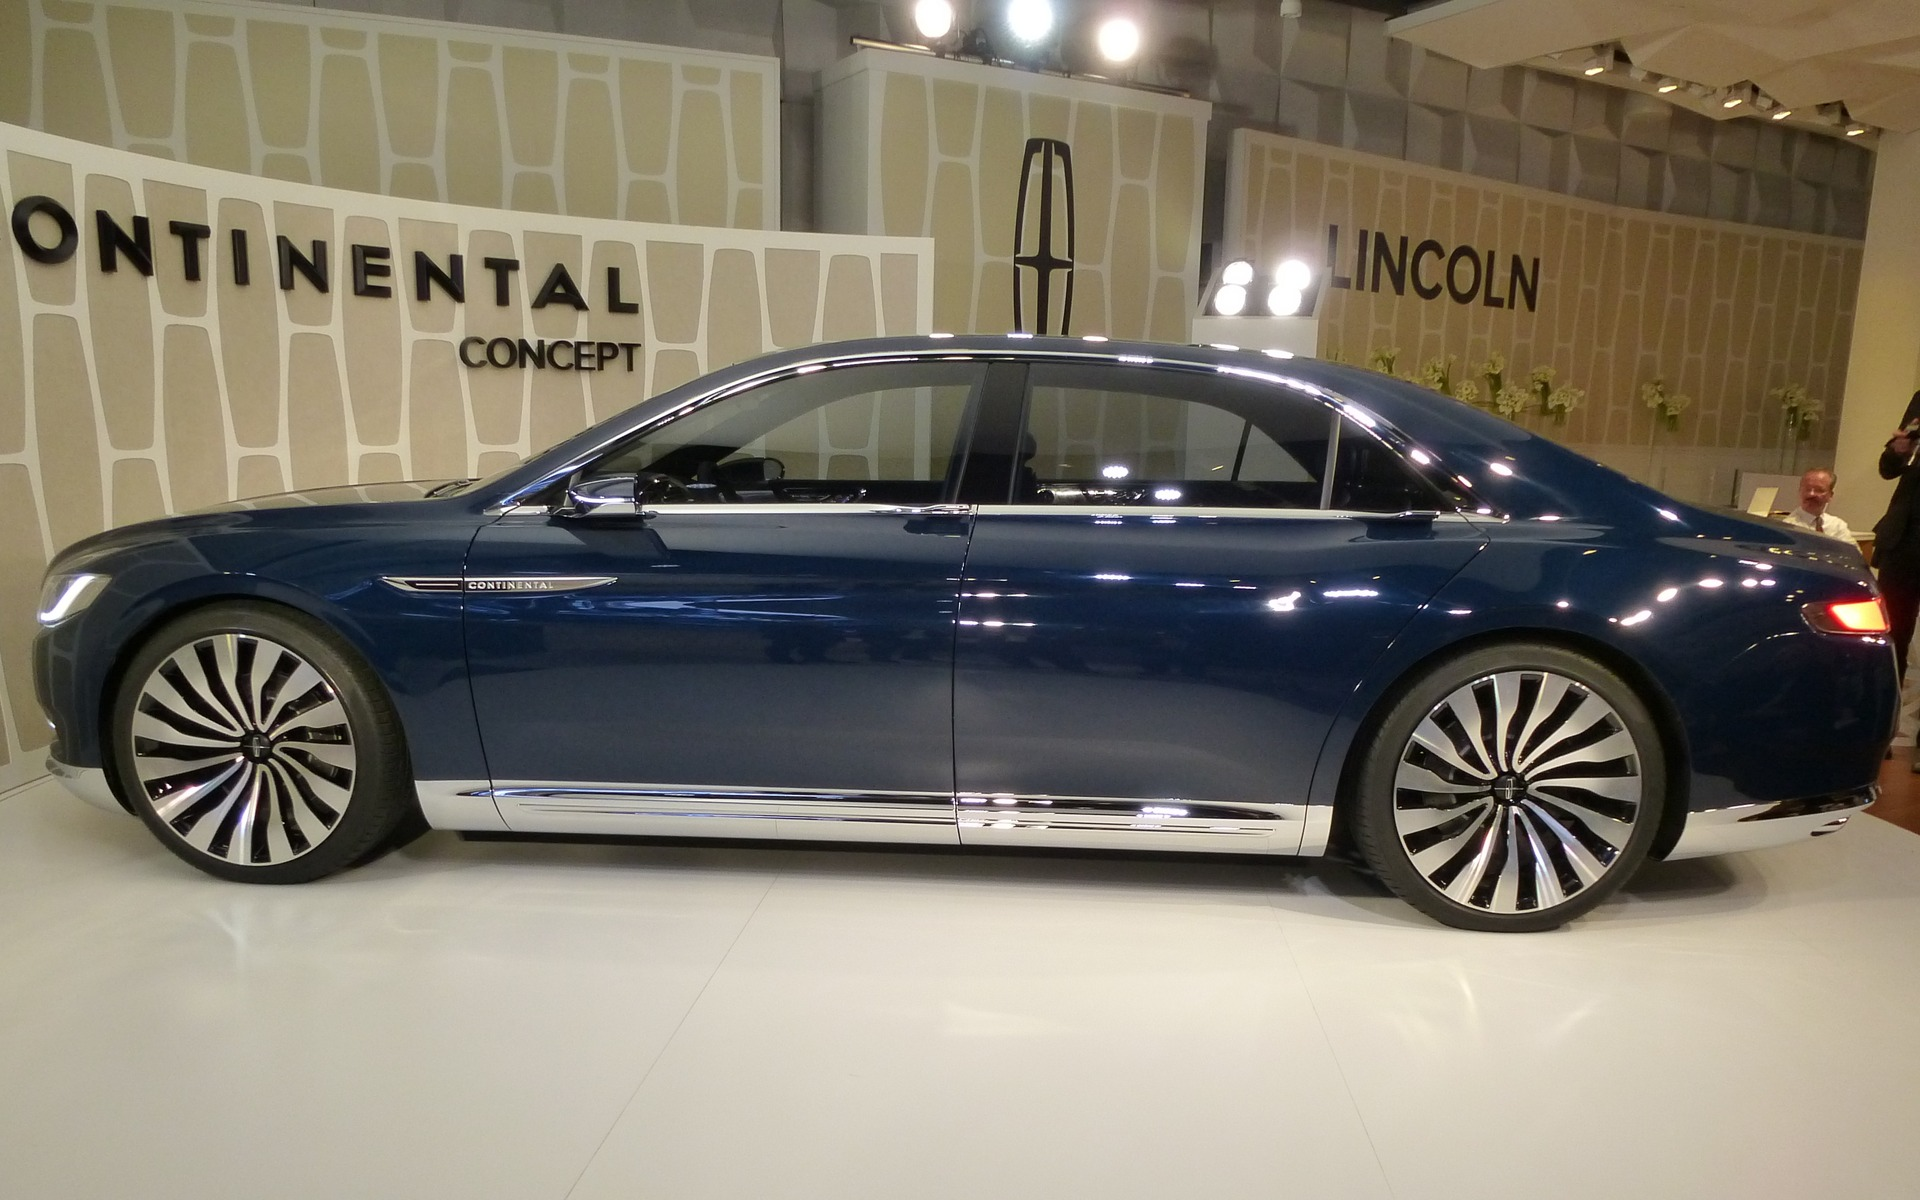 Lincoln Continental Concept Back To The Future 7 13